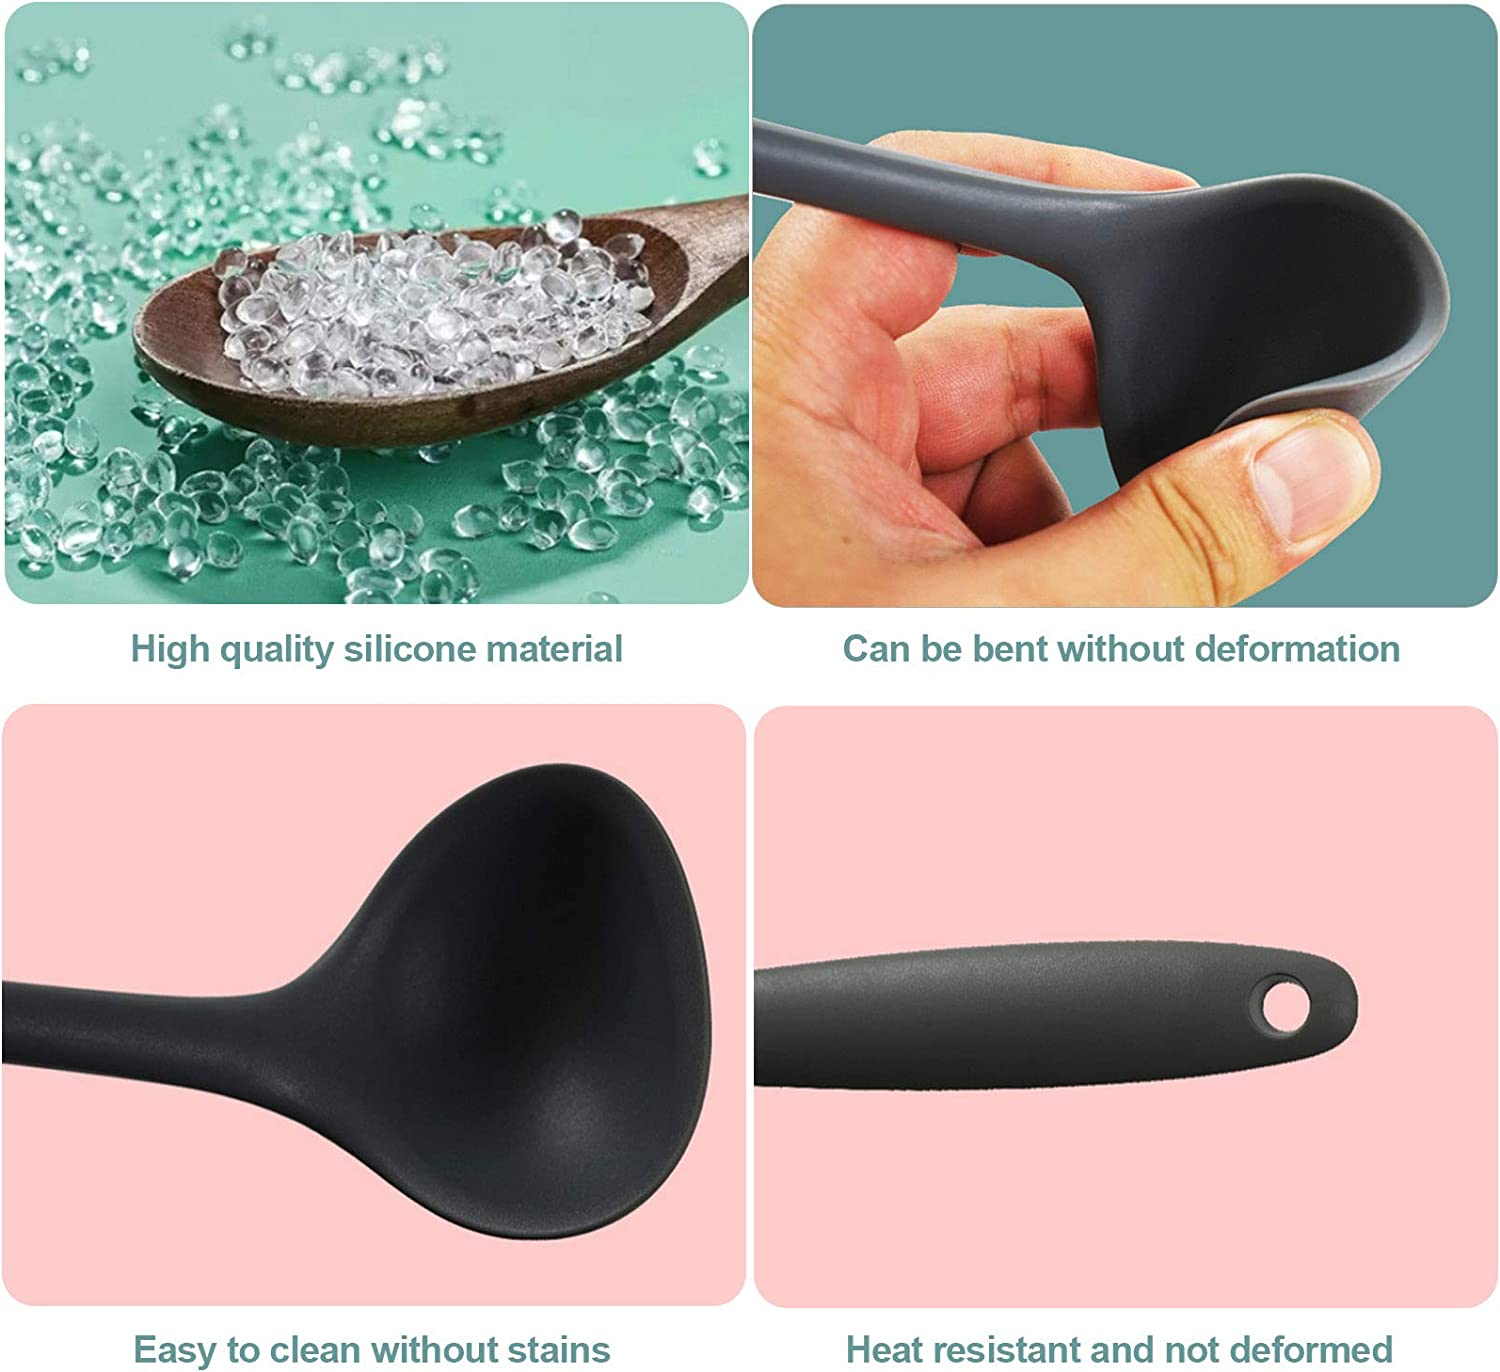 Kitchen Utensils. Mint Green High Temperature and Scalding Cooking Spoon with Comfortable Handle JOELELI Silicone Soup Ladle